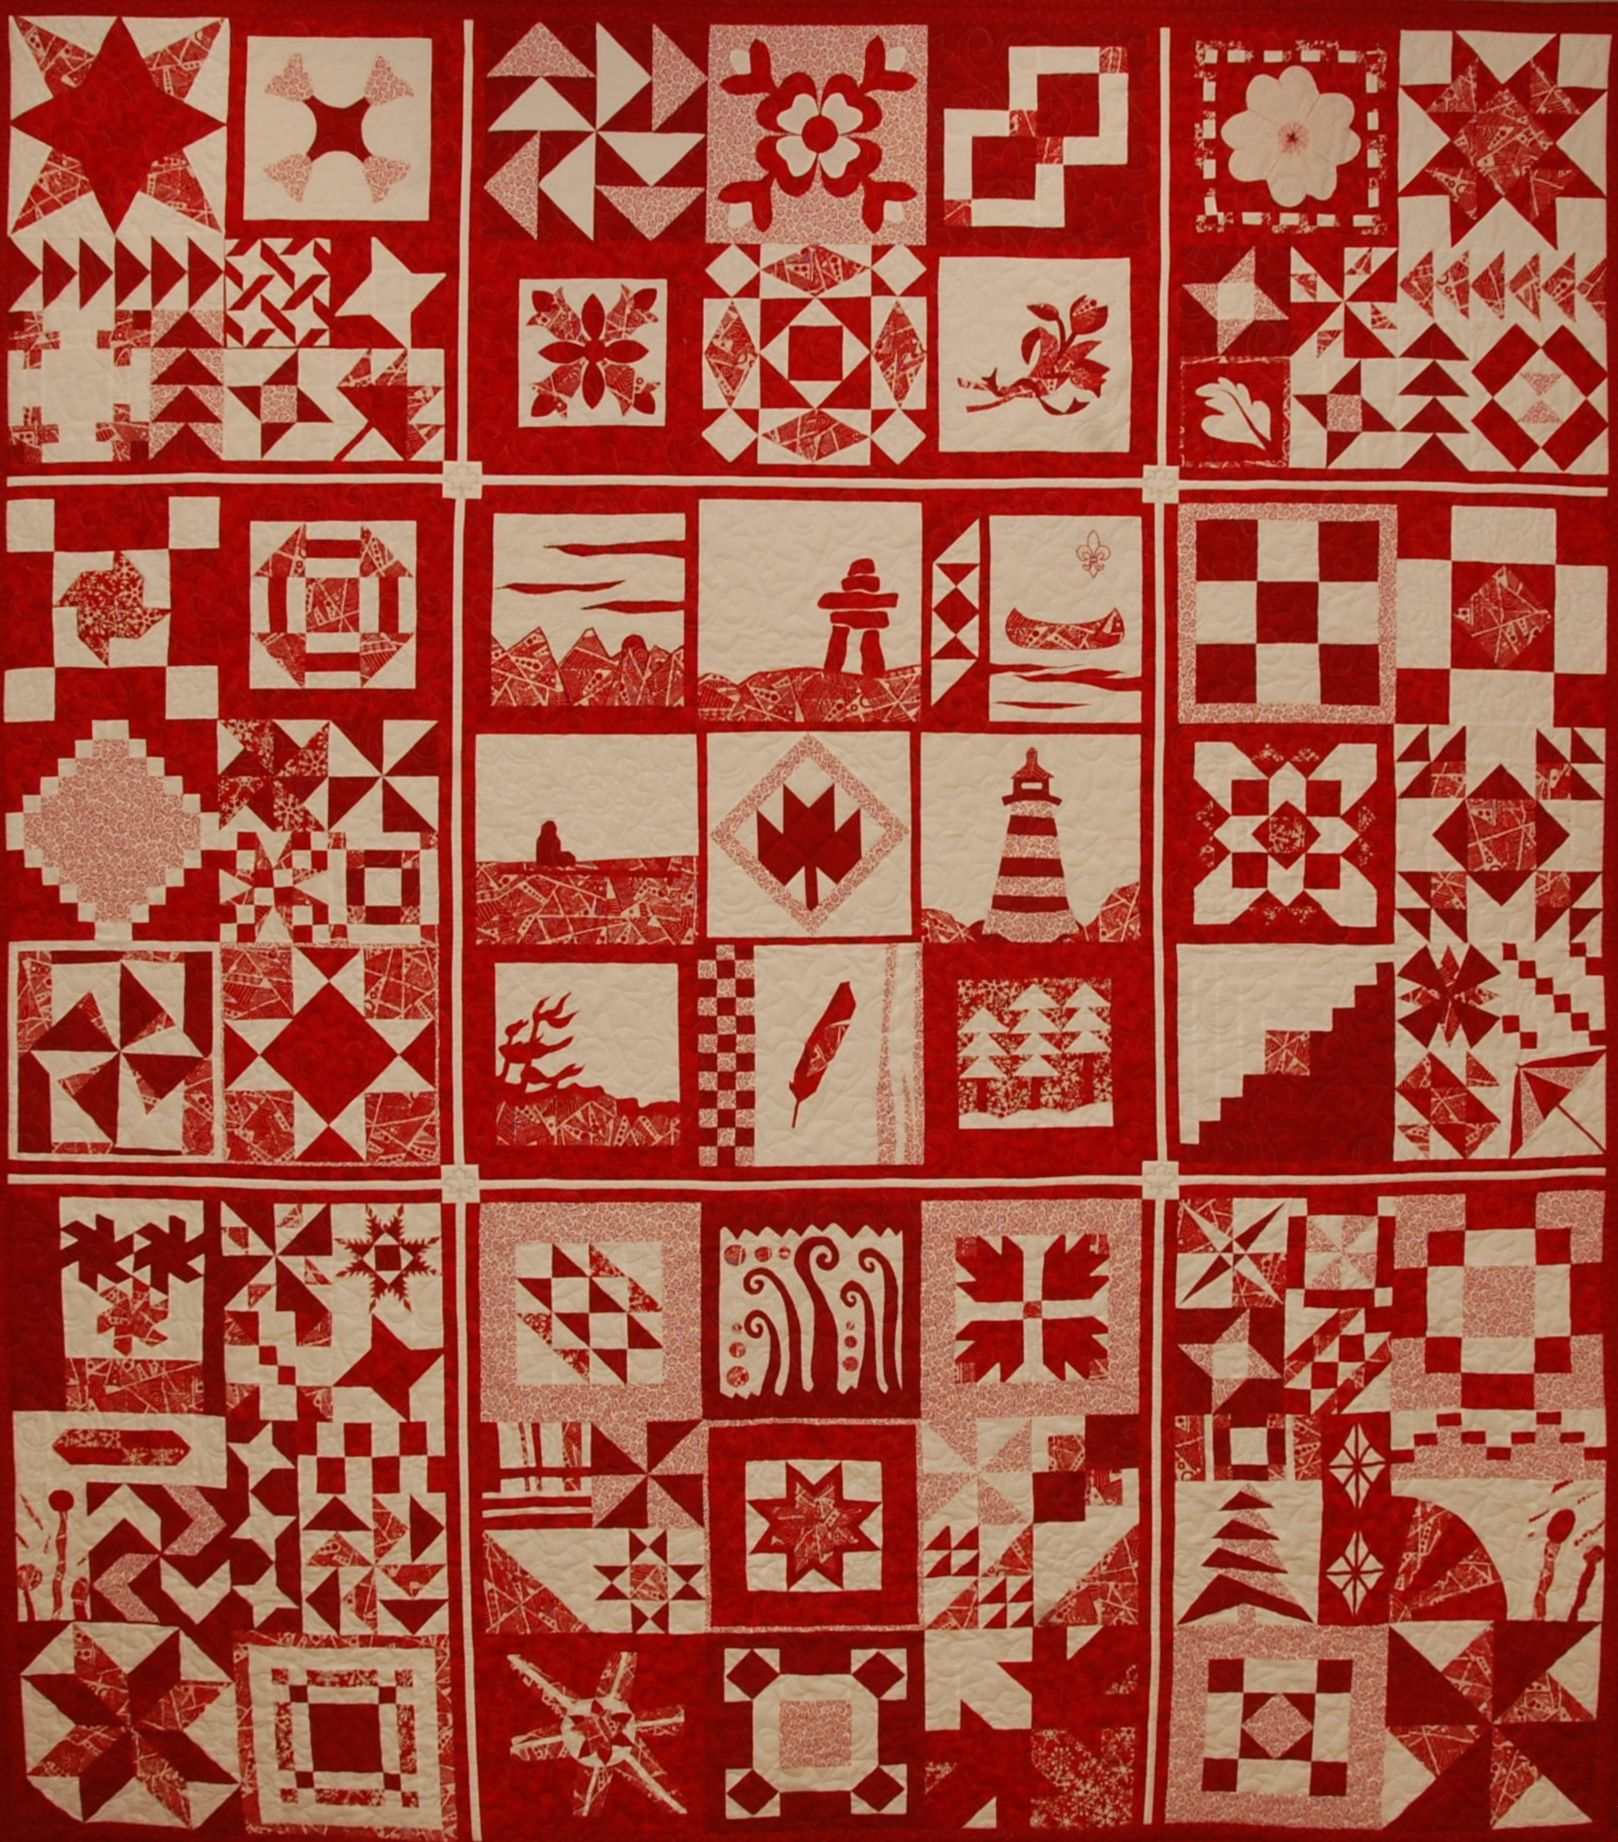 Quilted Expressions | Oakville Quilters' Guild Oakville, Ontario ... : quilting canada - Adamdwight.com